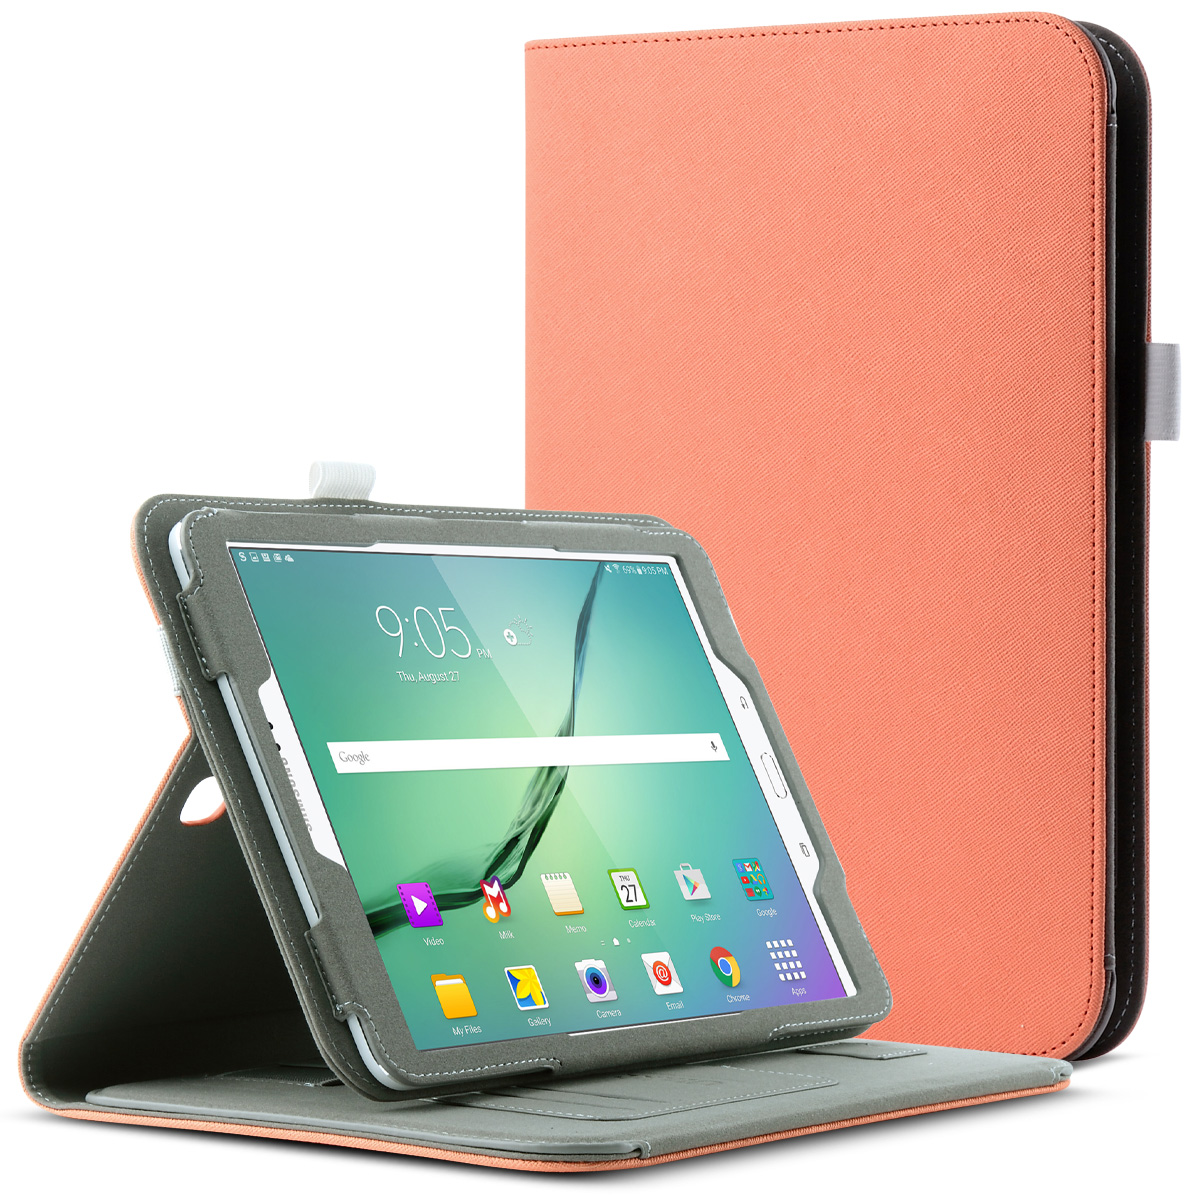 Galaxy Tab S2 Case, Tab S2 Keyboard, ULAK Portable Bluetooth Keyboard with Built In Hand Strap & Media Stand for Samsung Galaxy Tab S2 (9.7 inch) 2015 Release